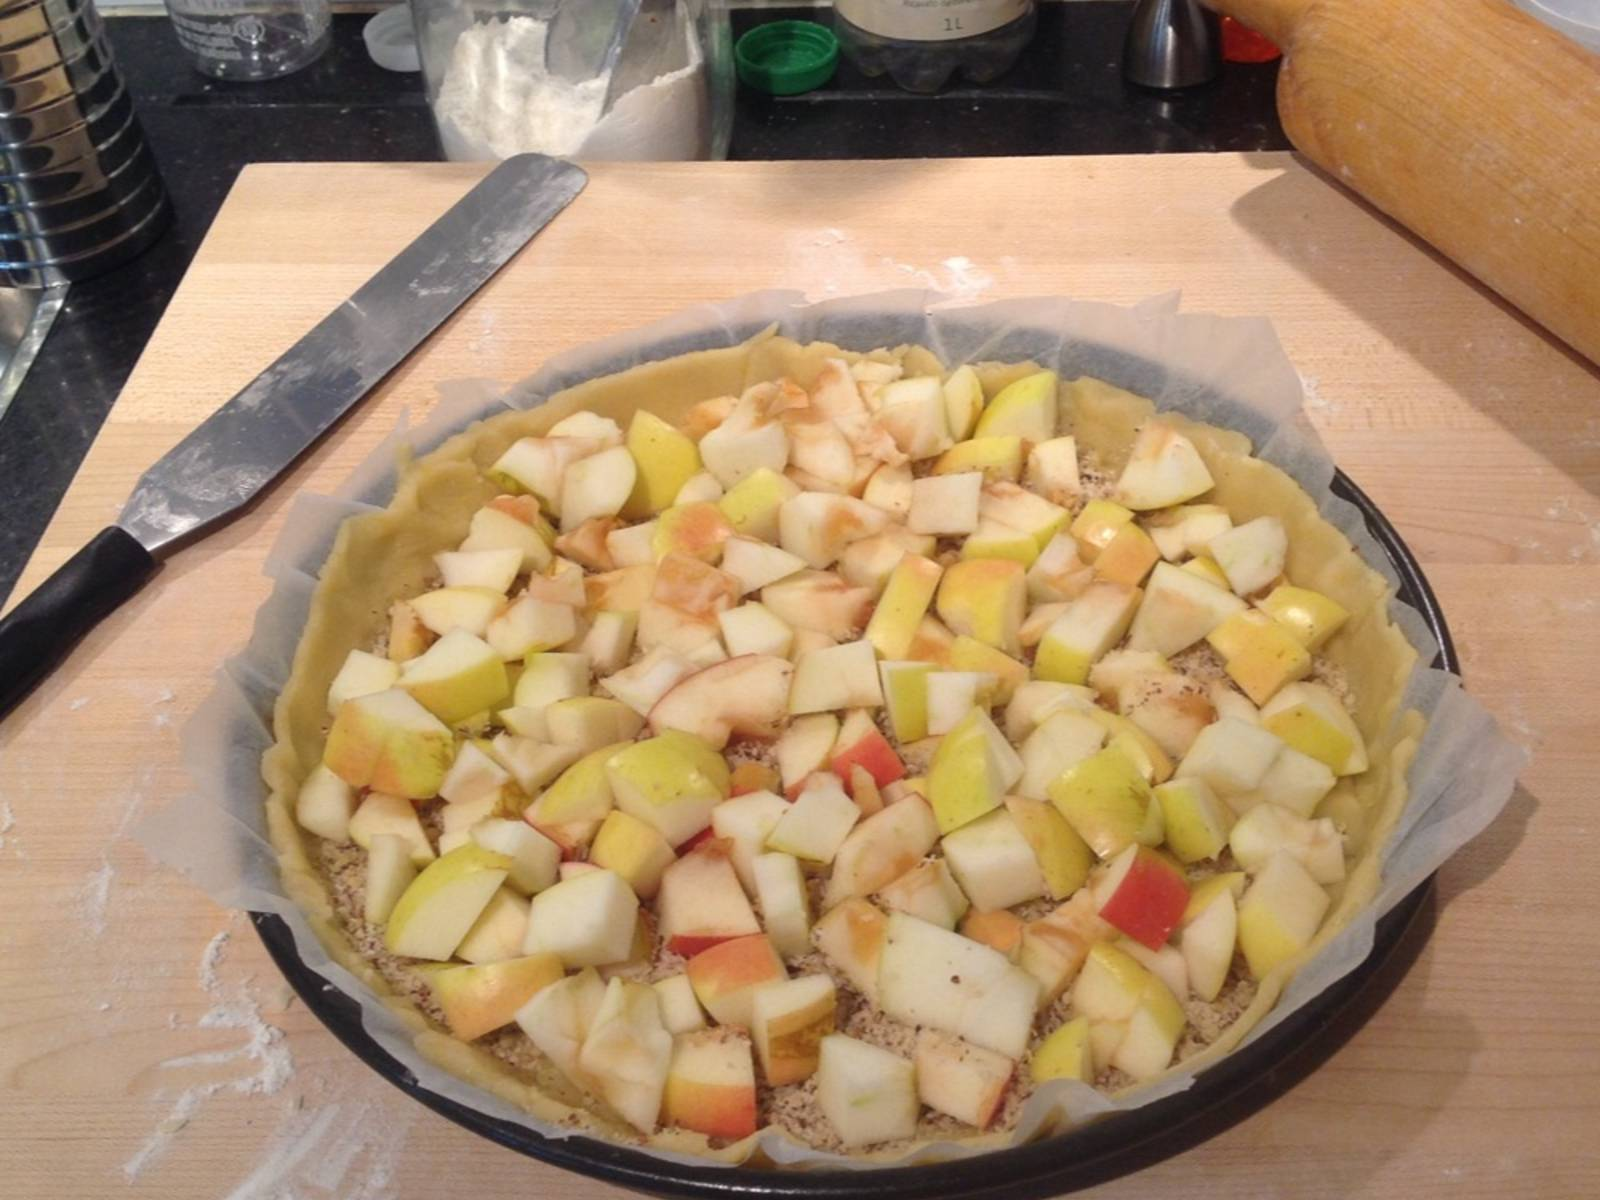 Peel, core, and dice apples. Distribute over the base and pour over the cream mixture.